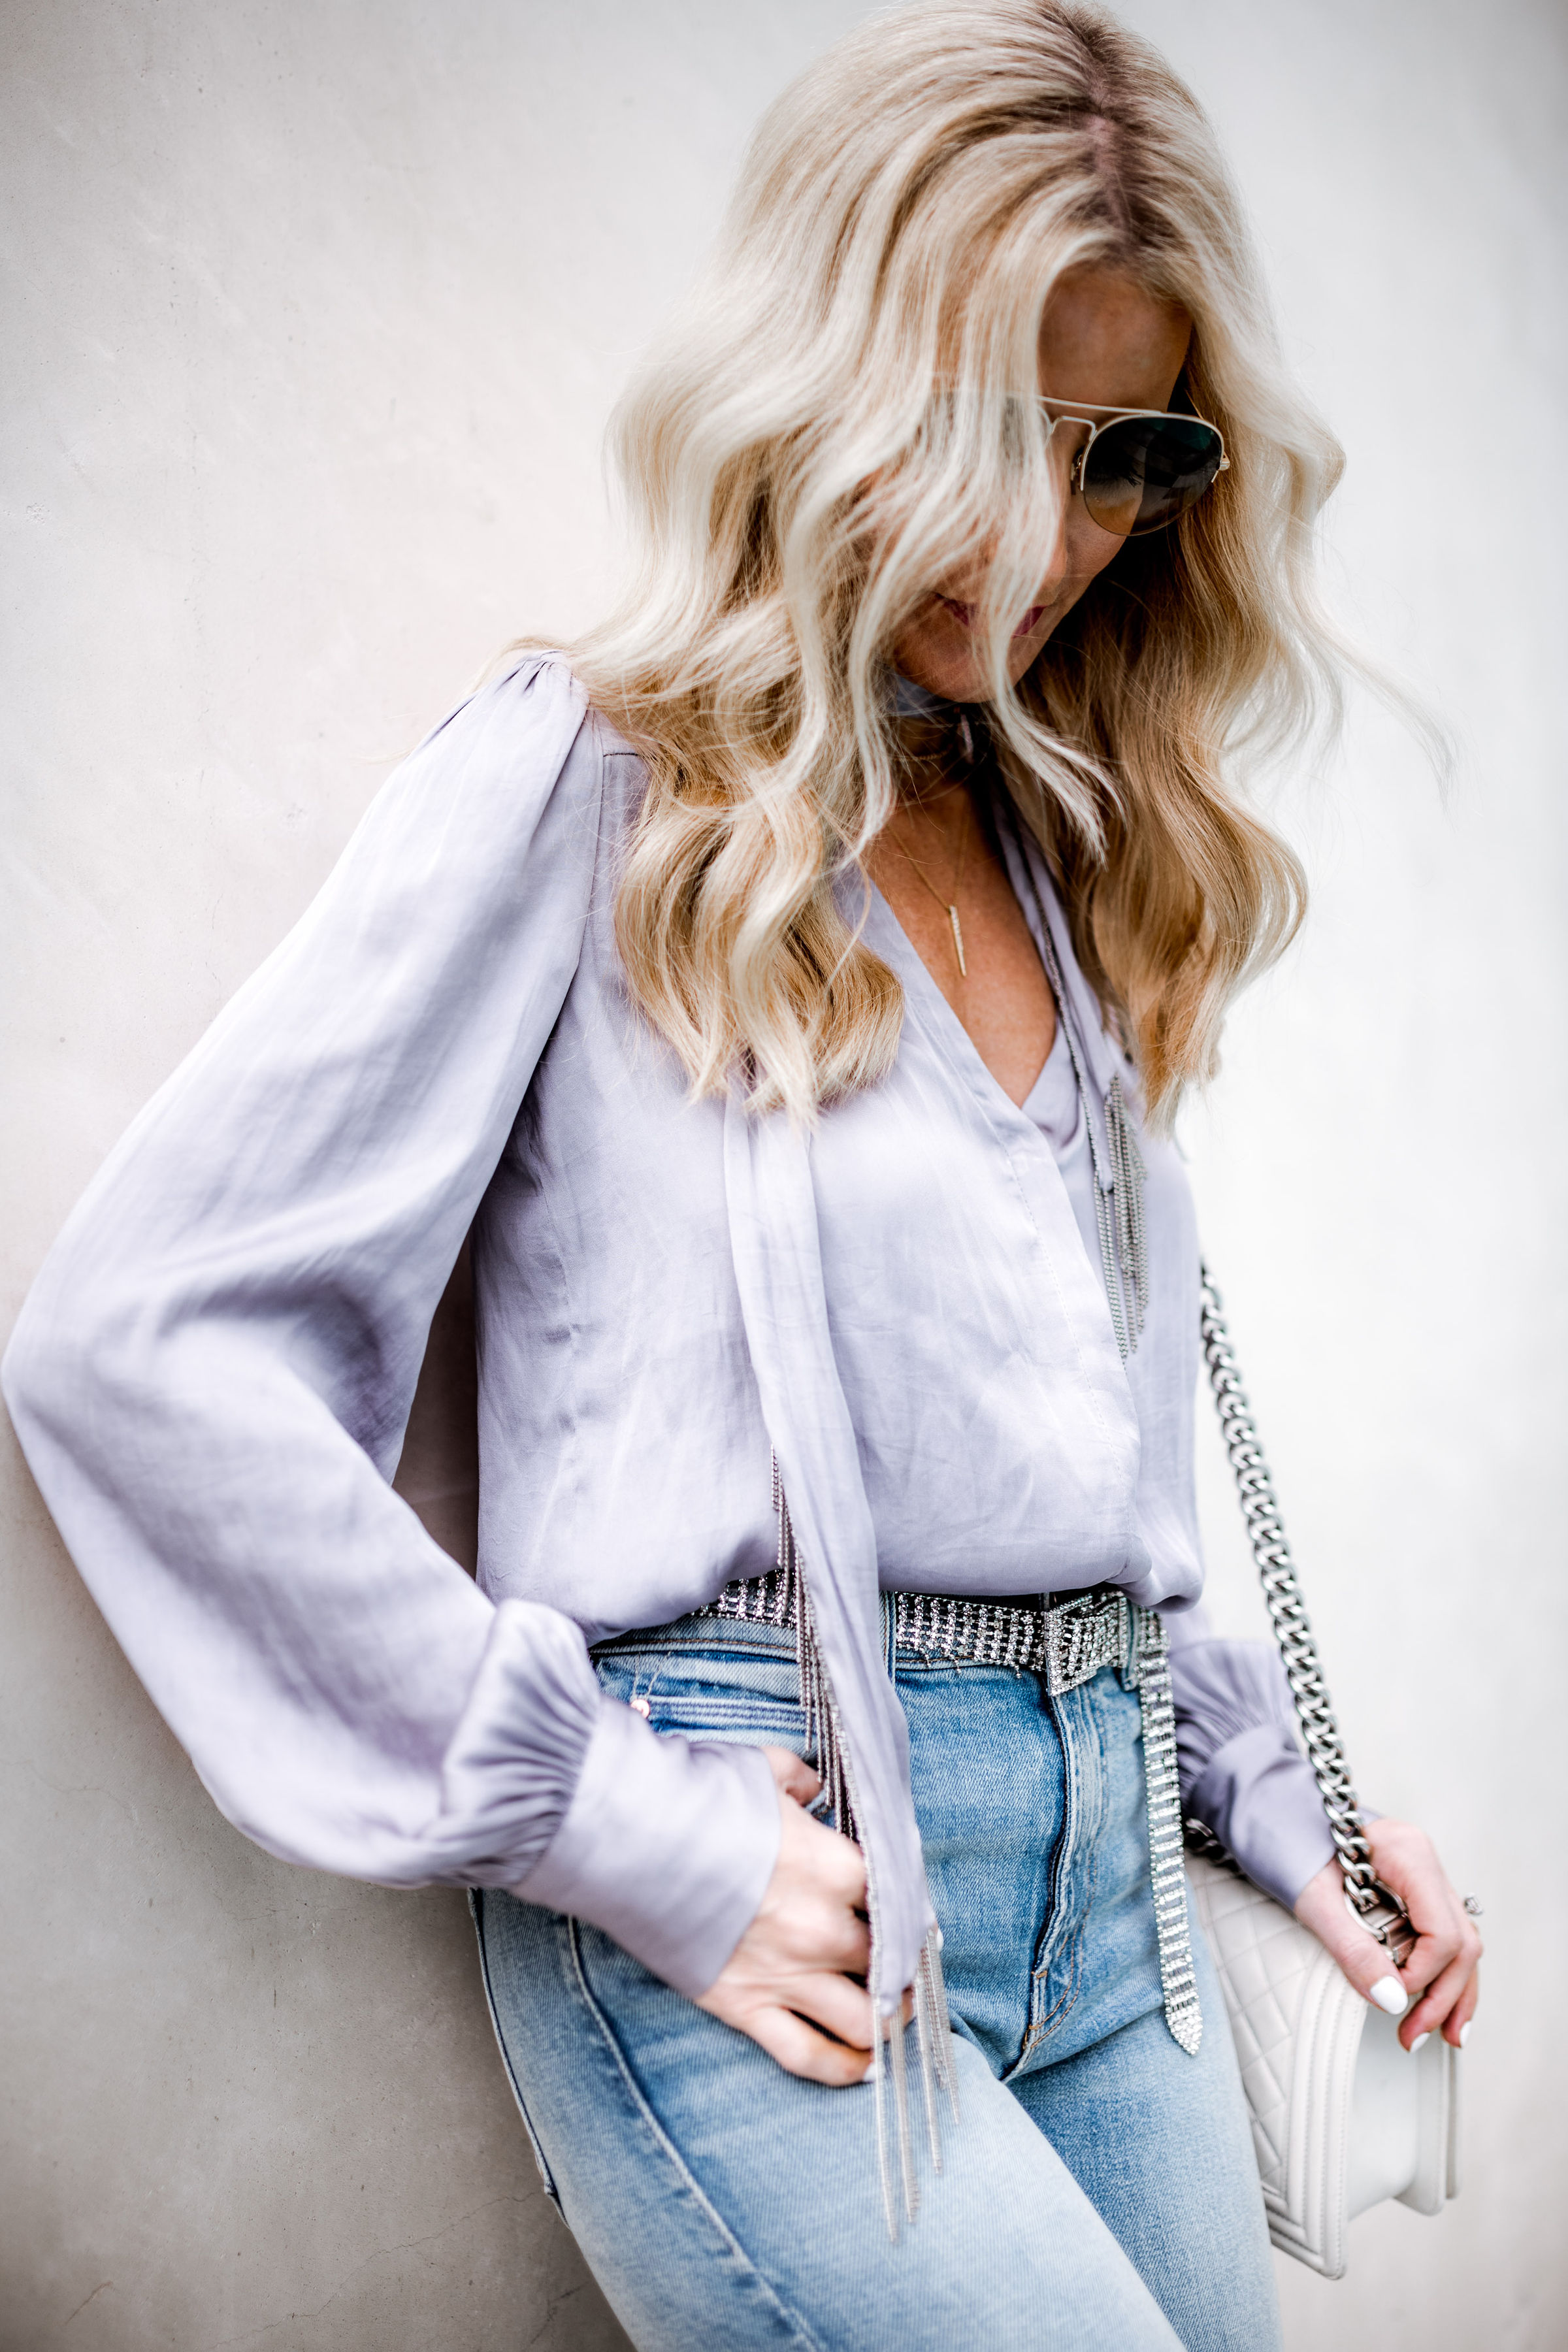 Dallas fashion blogger wearing silver belt and Mother jeans